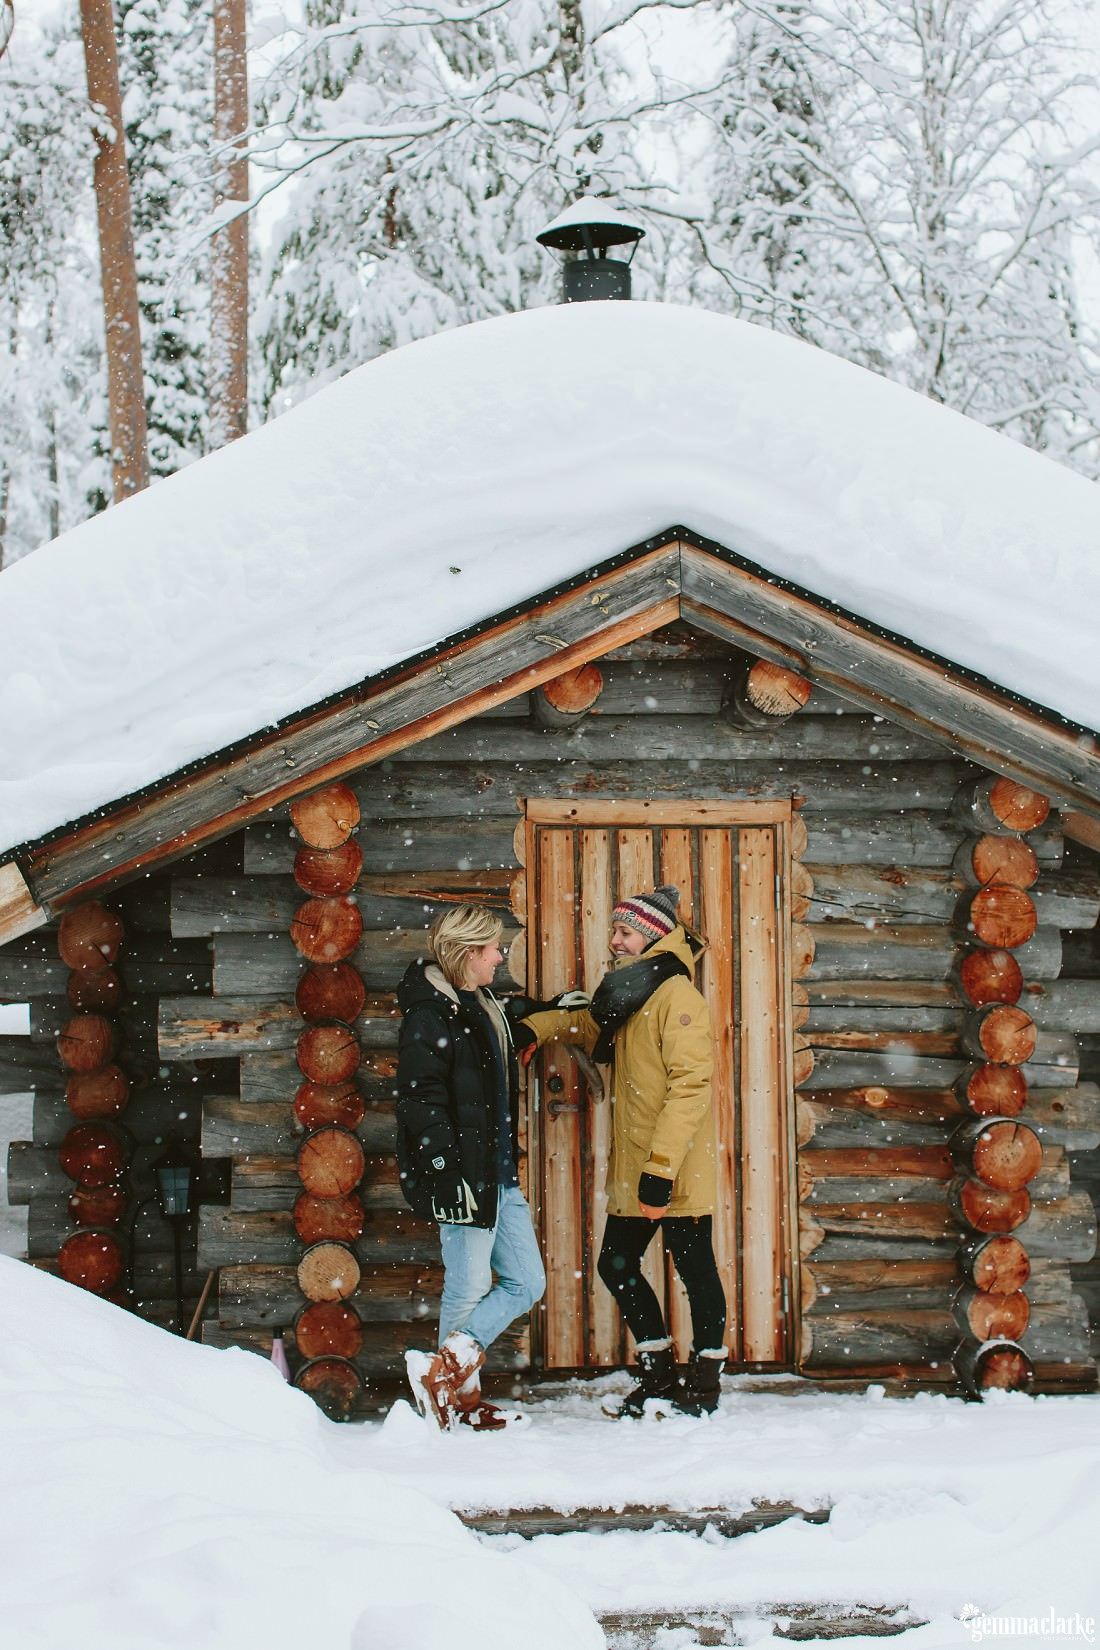 A couple smile at each other while standing in front of a snow covered wood cabin